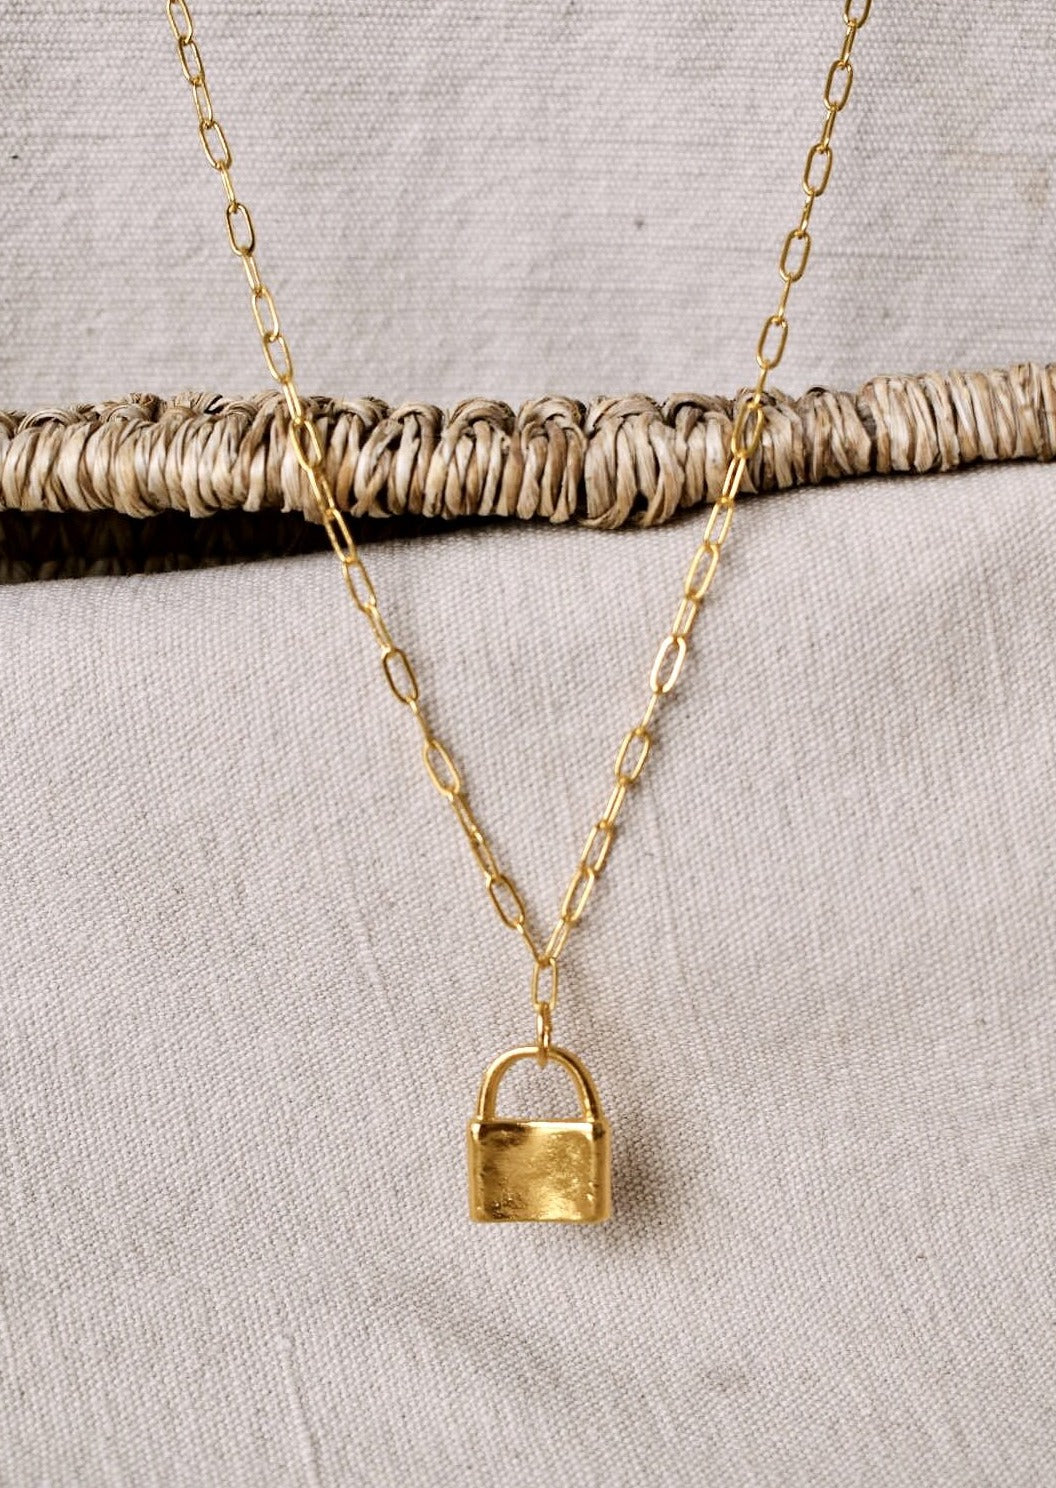 Paddlock Necklace